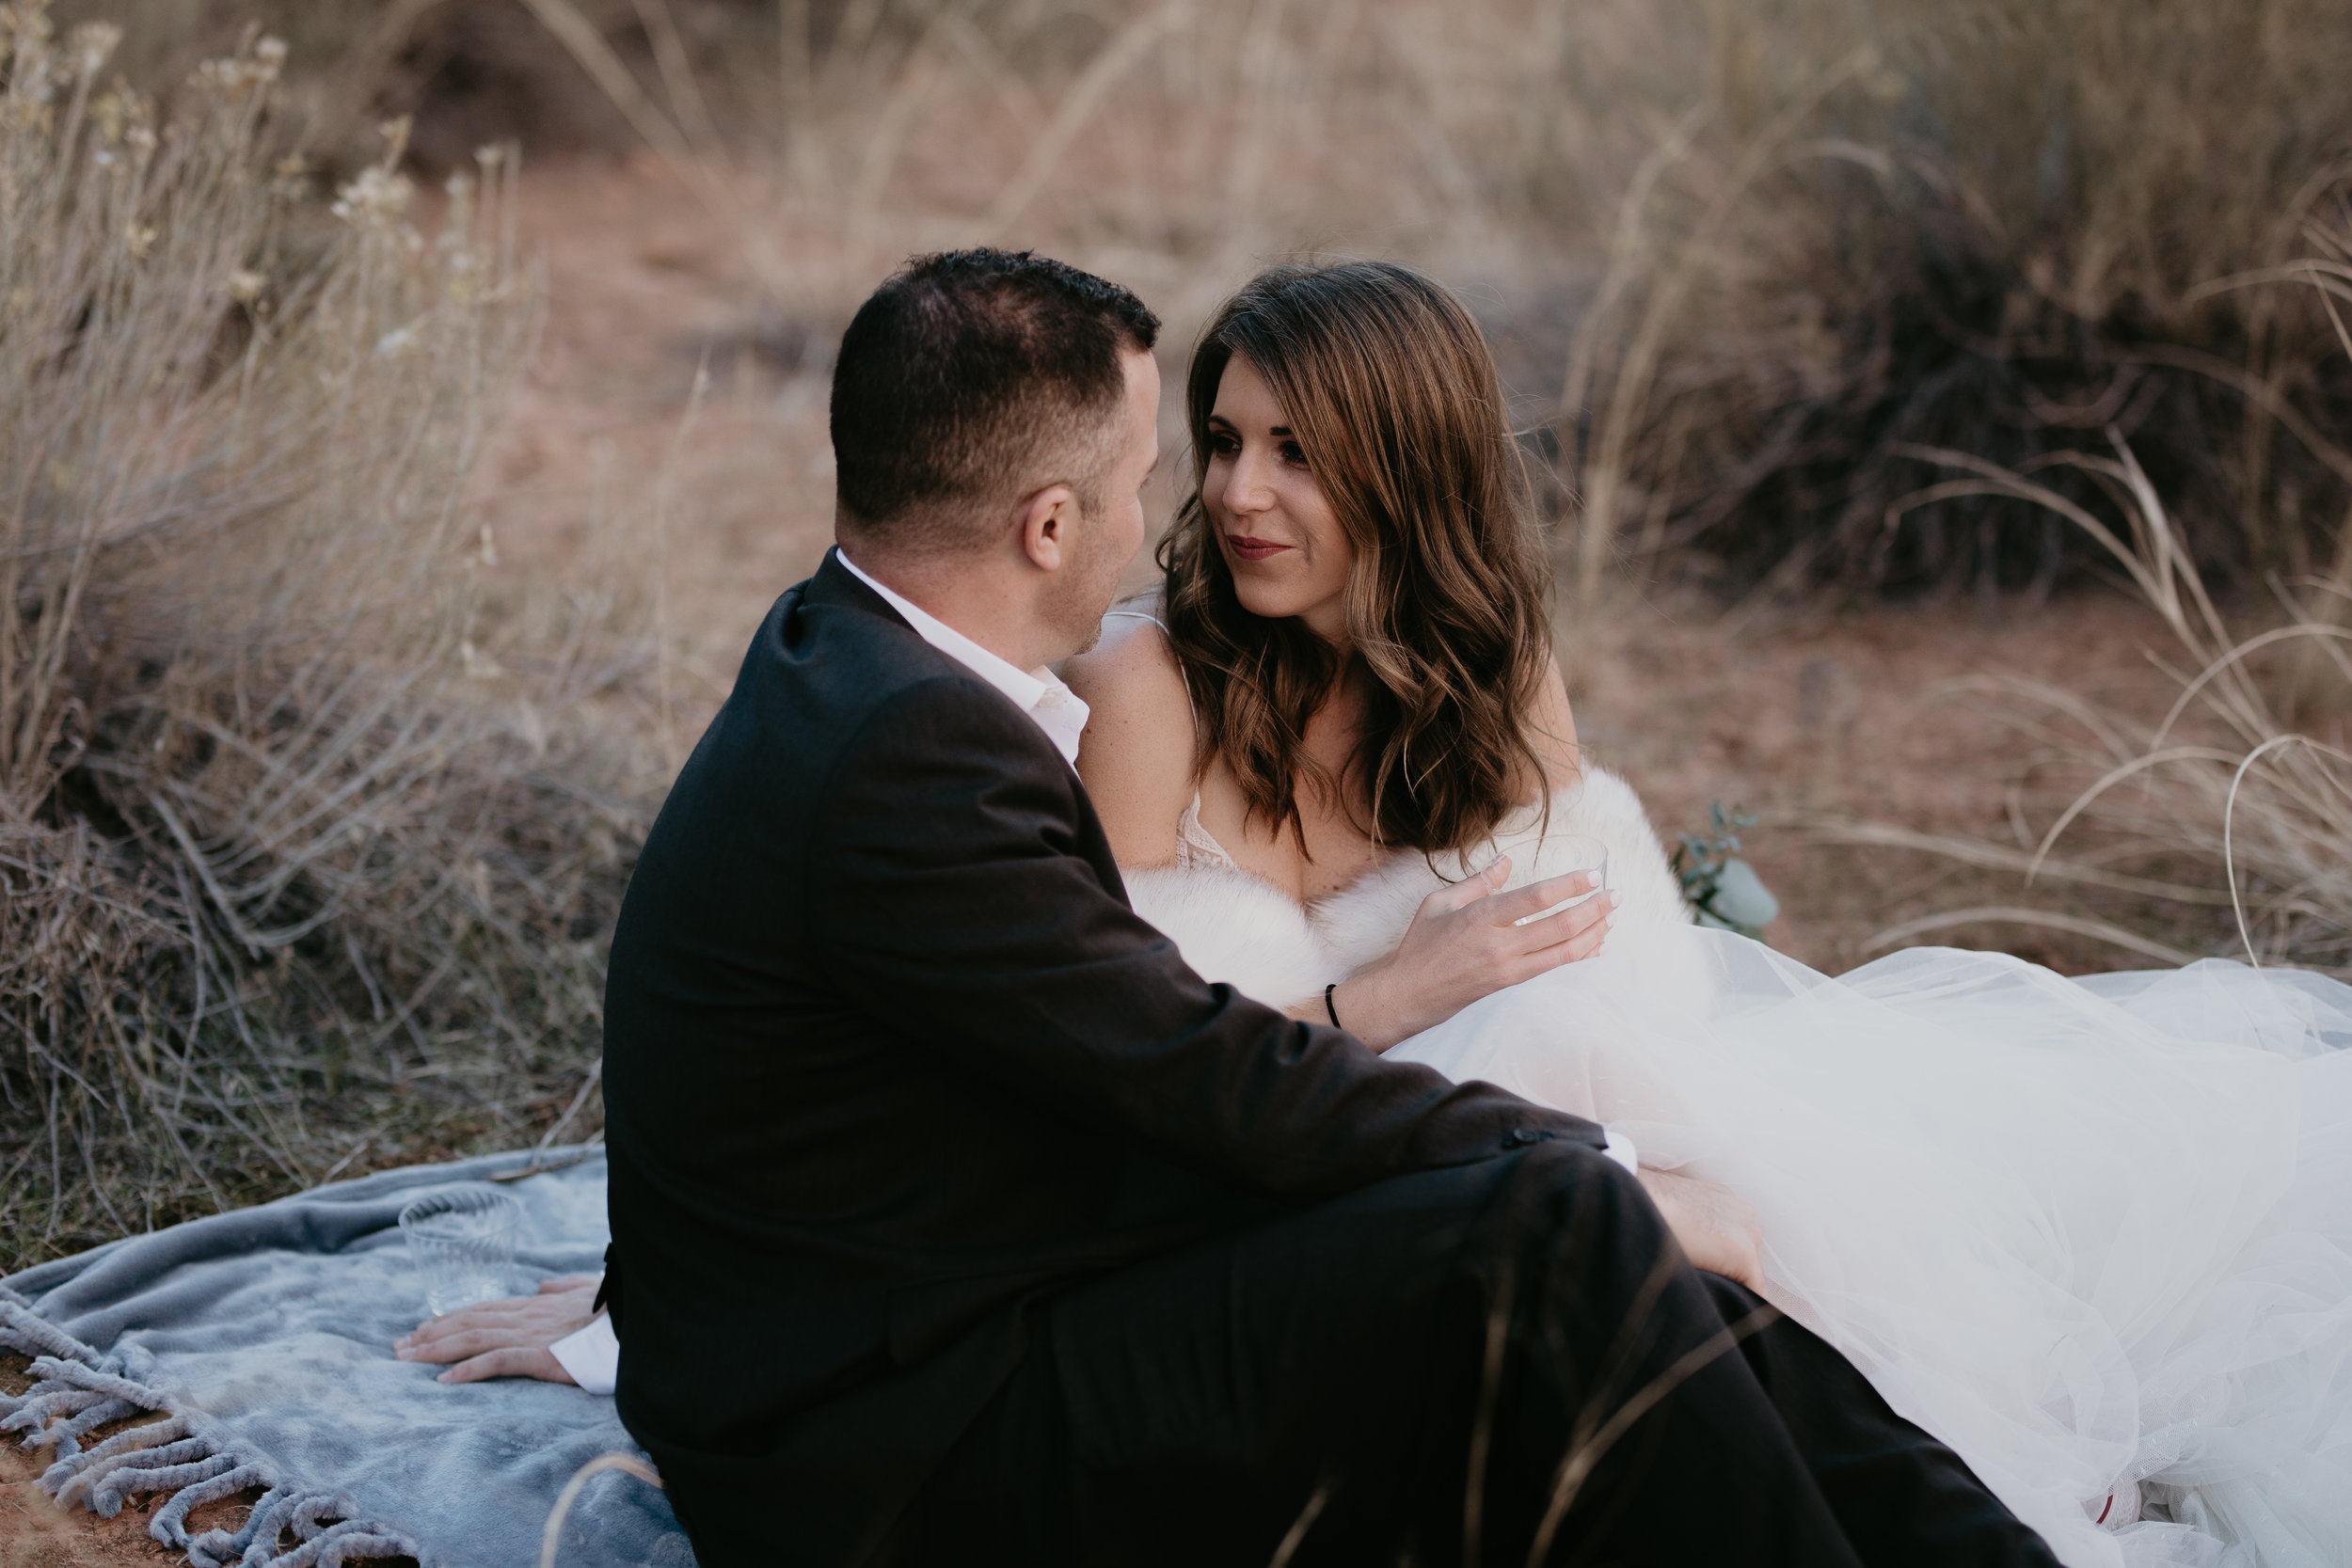 nicole-daacke-photography-zion-national-park-elopement-photographer-canyon-overlook-trail-elope-hiking-adventure-wedding-photos-fall-utah-red-rock-canyon-stgeorge-eloping-photographer-8.jpg